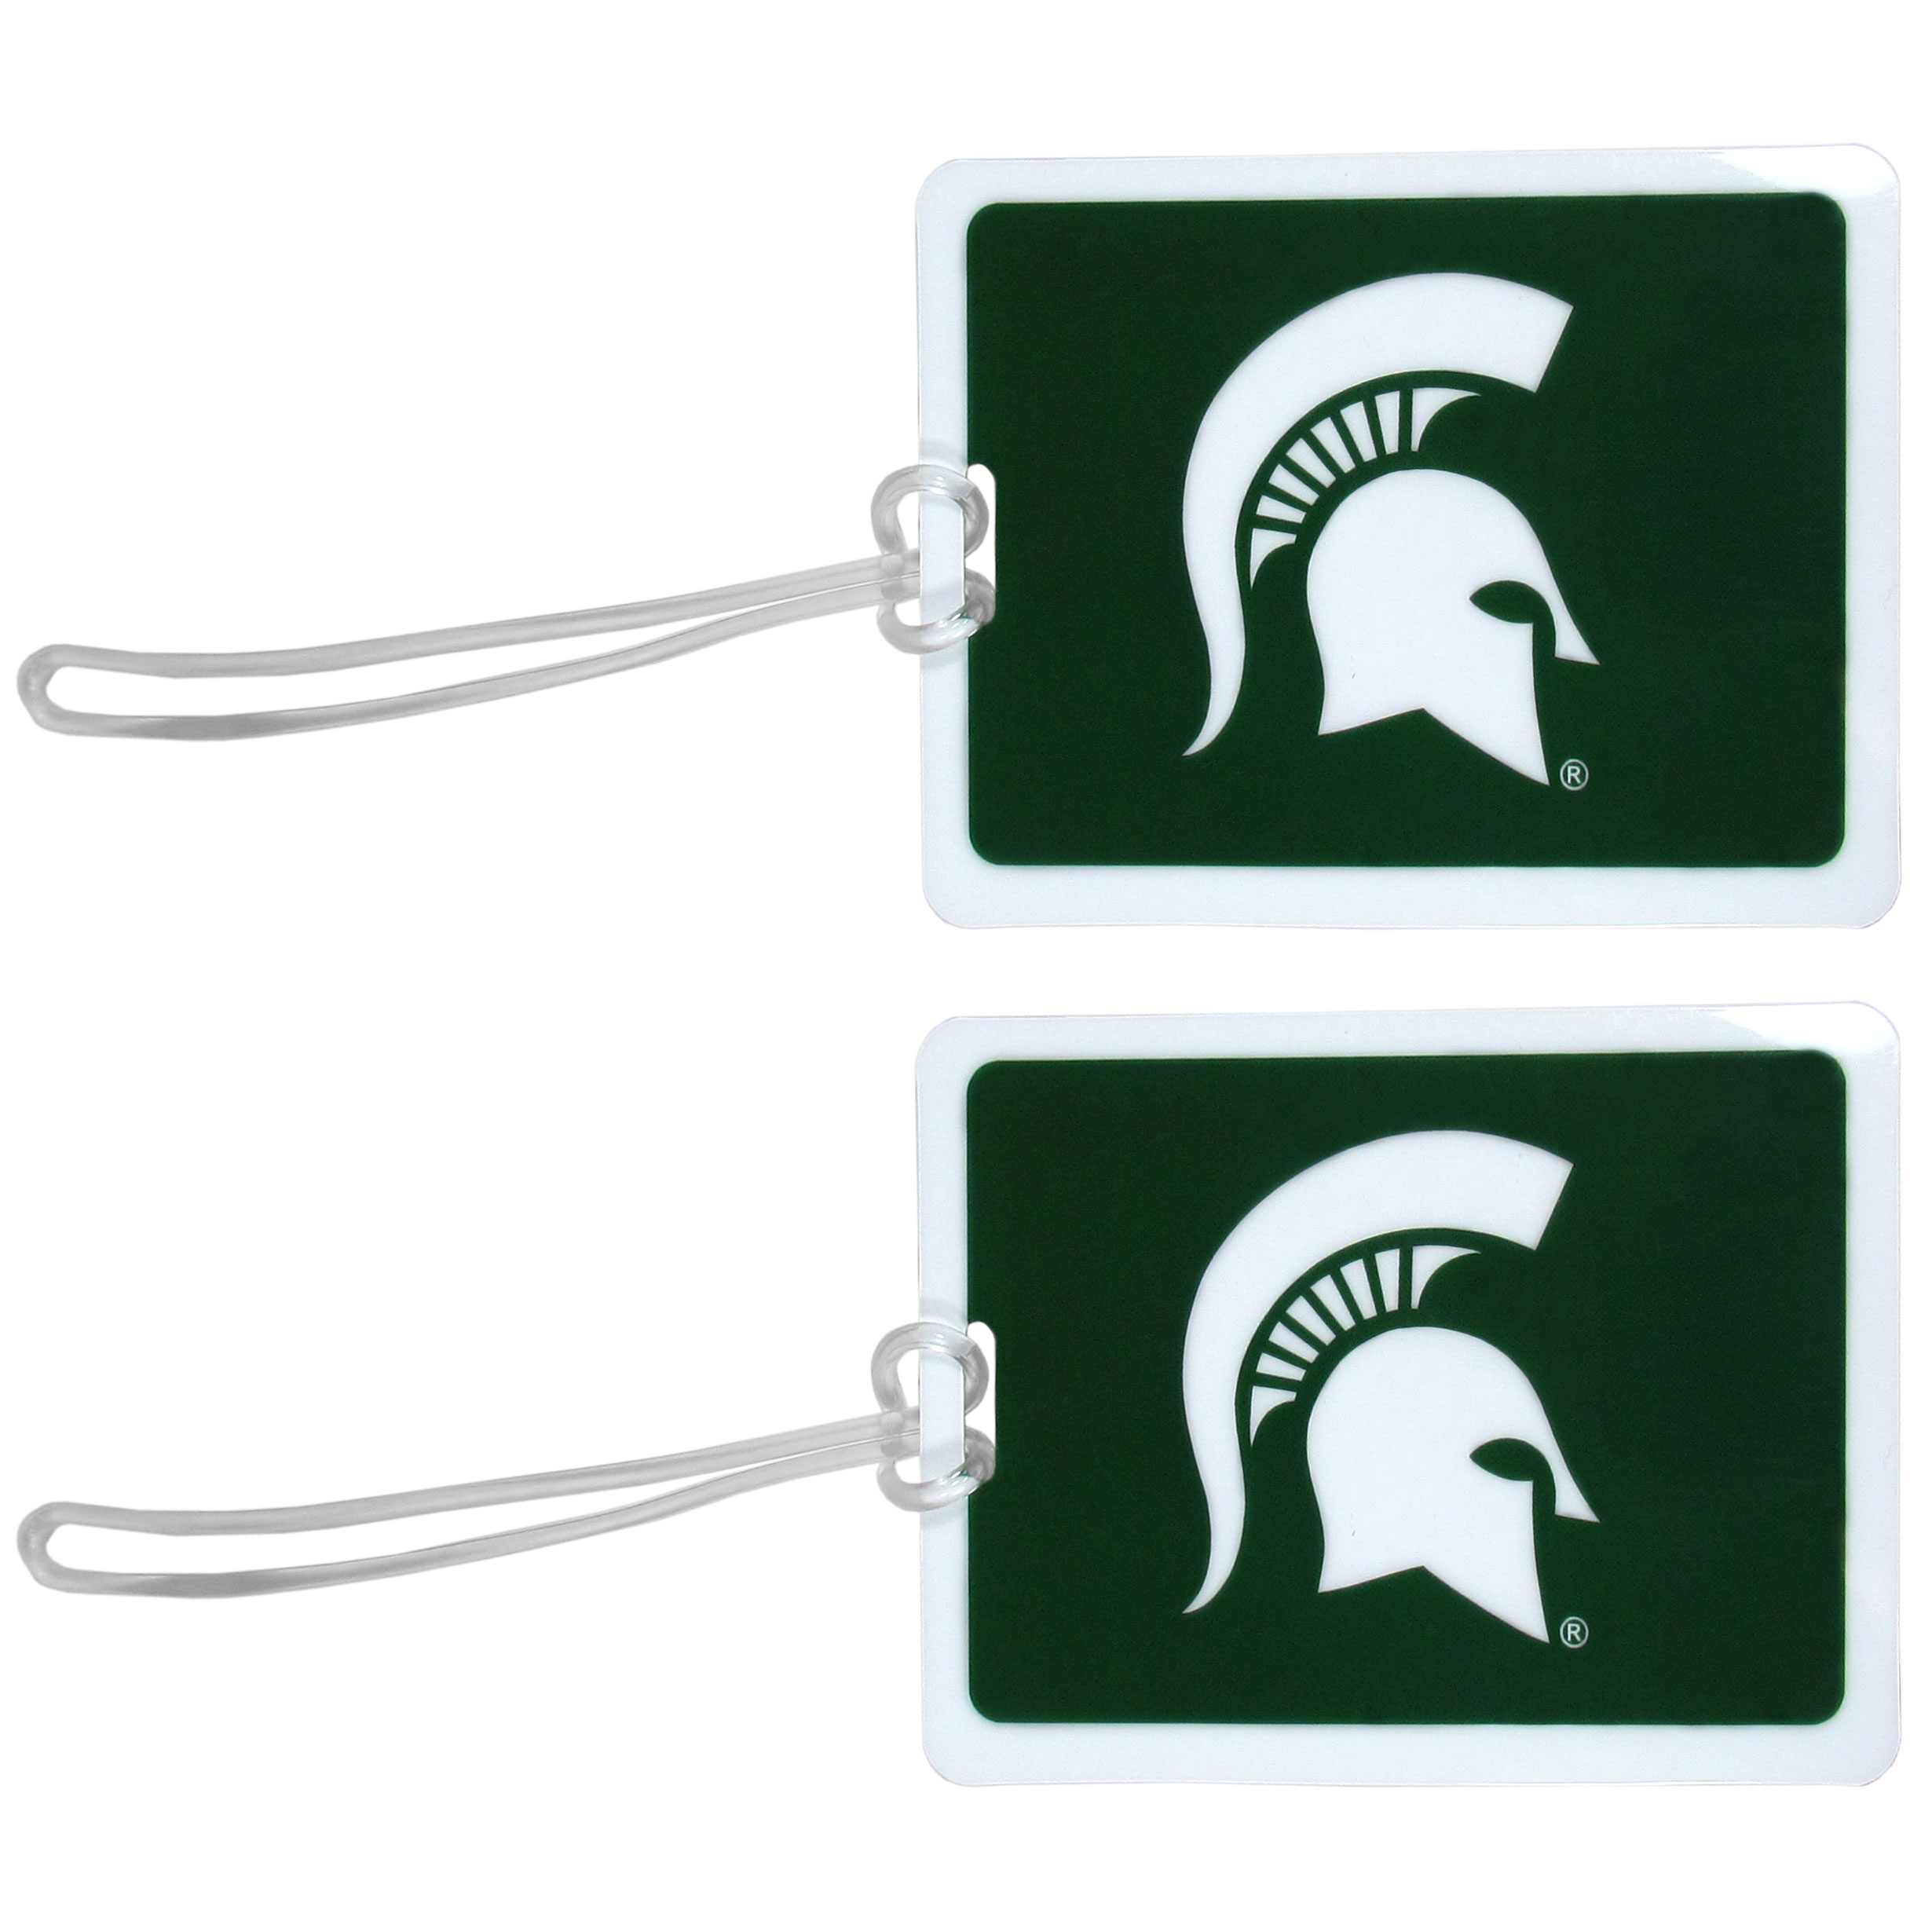 Michigan St. Spartans Vinyl Luggage Tag, 2pk - Tired of trying to spot your suitcase or bag in a sea of luggage? Try our large and colorful Michigan St. Spartans luggage tags. The tag is 4x3 inches and has a 5 inch cord to attach it easily to your bags, backpacks or luggage. The front of the tag features the team logo in a bright, team colored background and you can write you name, address and phone number on the back of the tag.